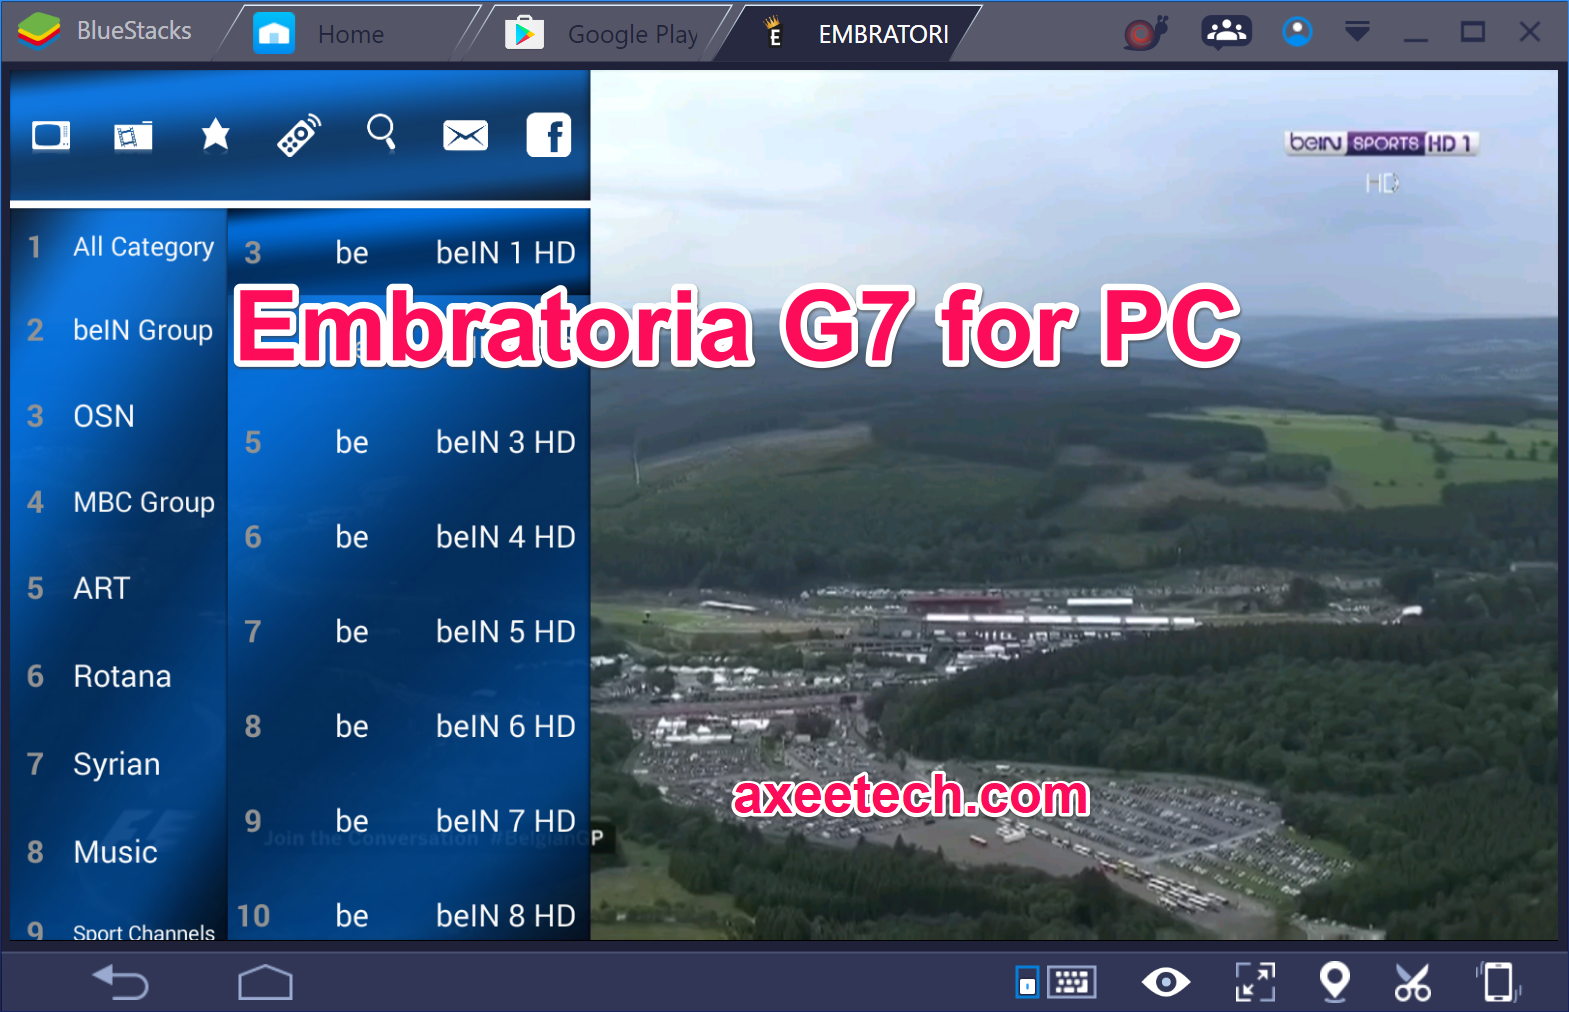 embratoria g7 gratuit pc